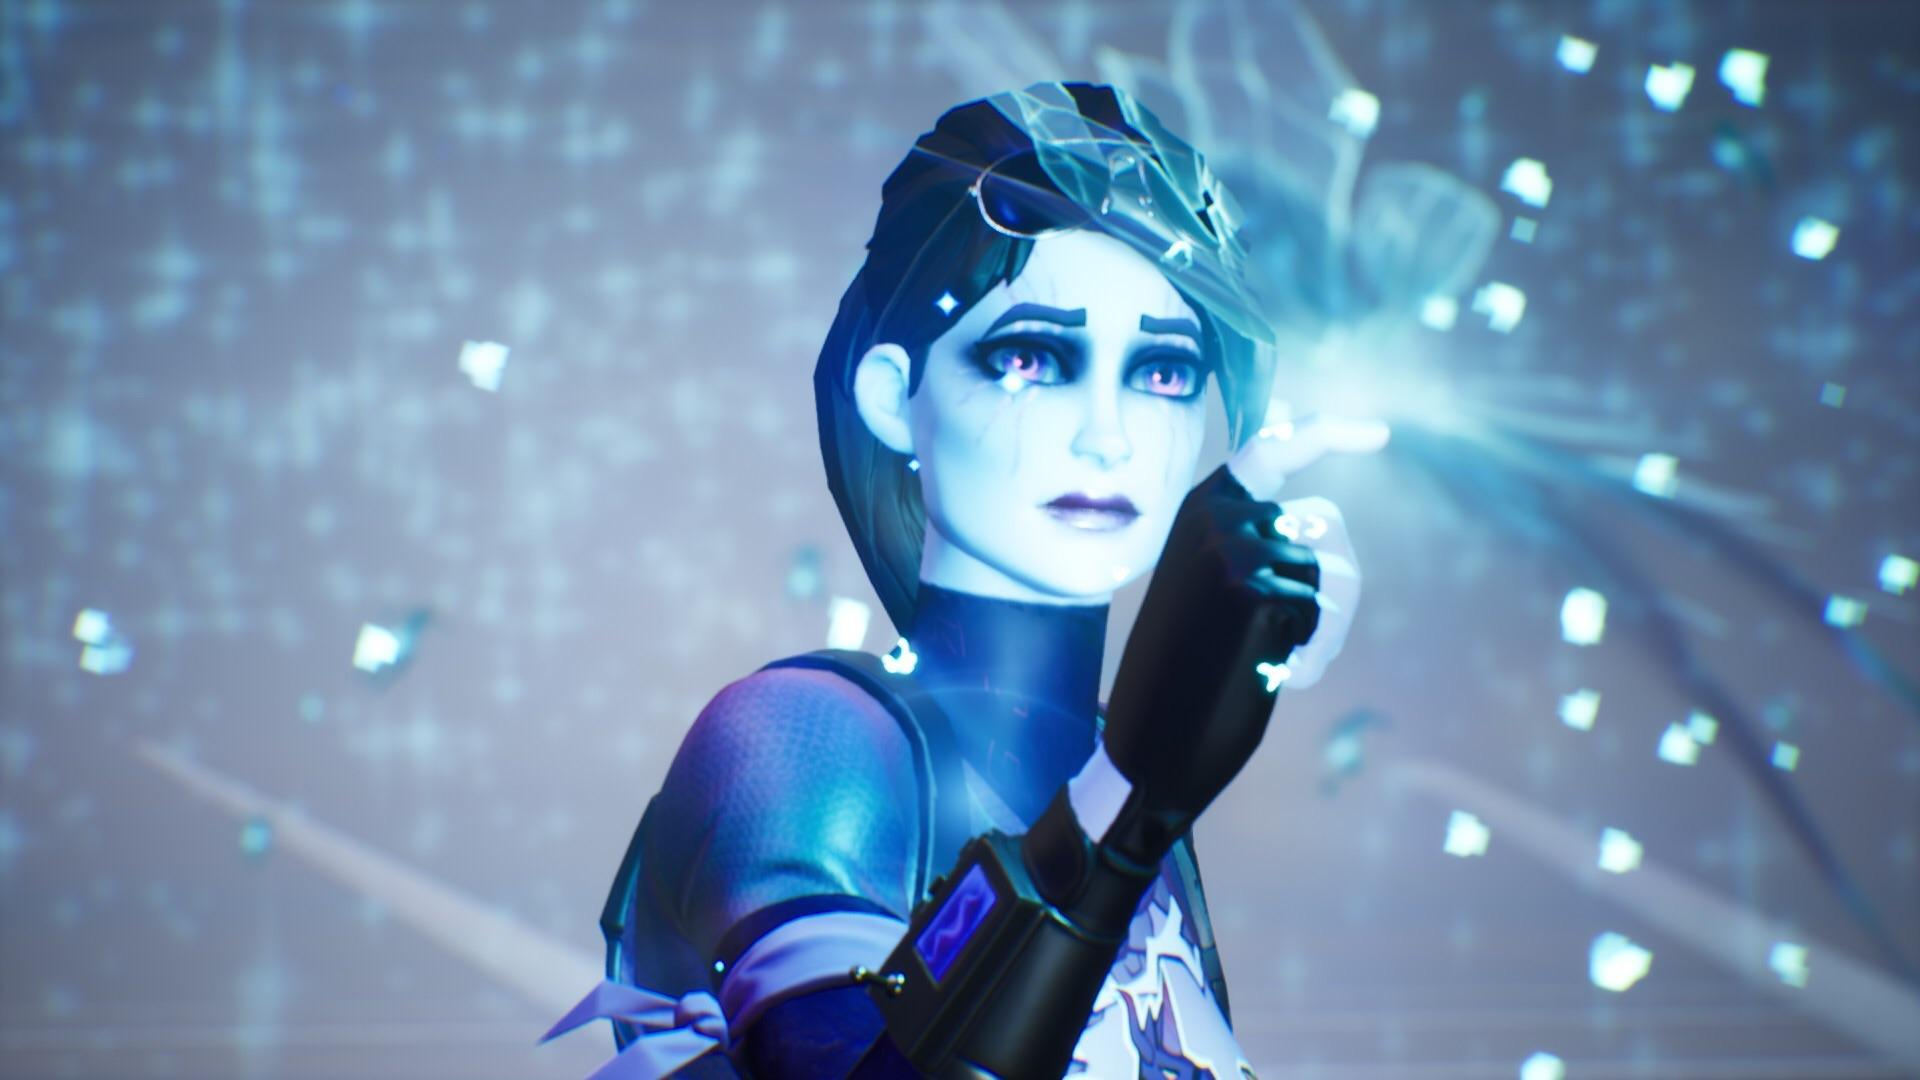 Dark bomber butterfly event wallpaper : FortNiteBR